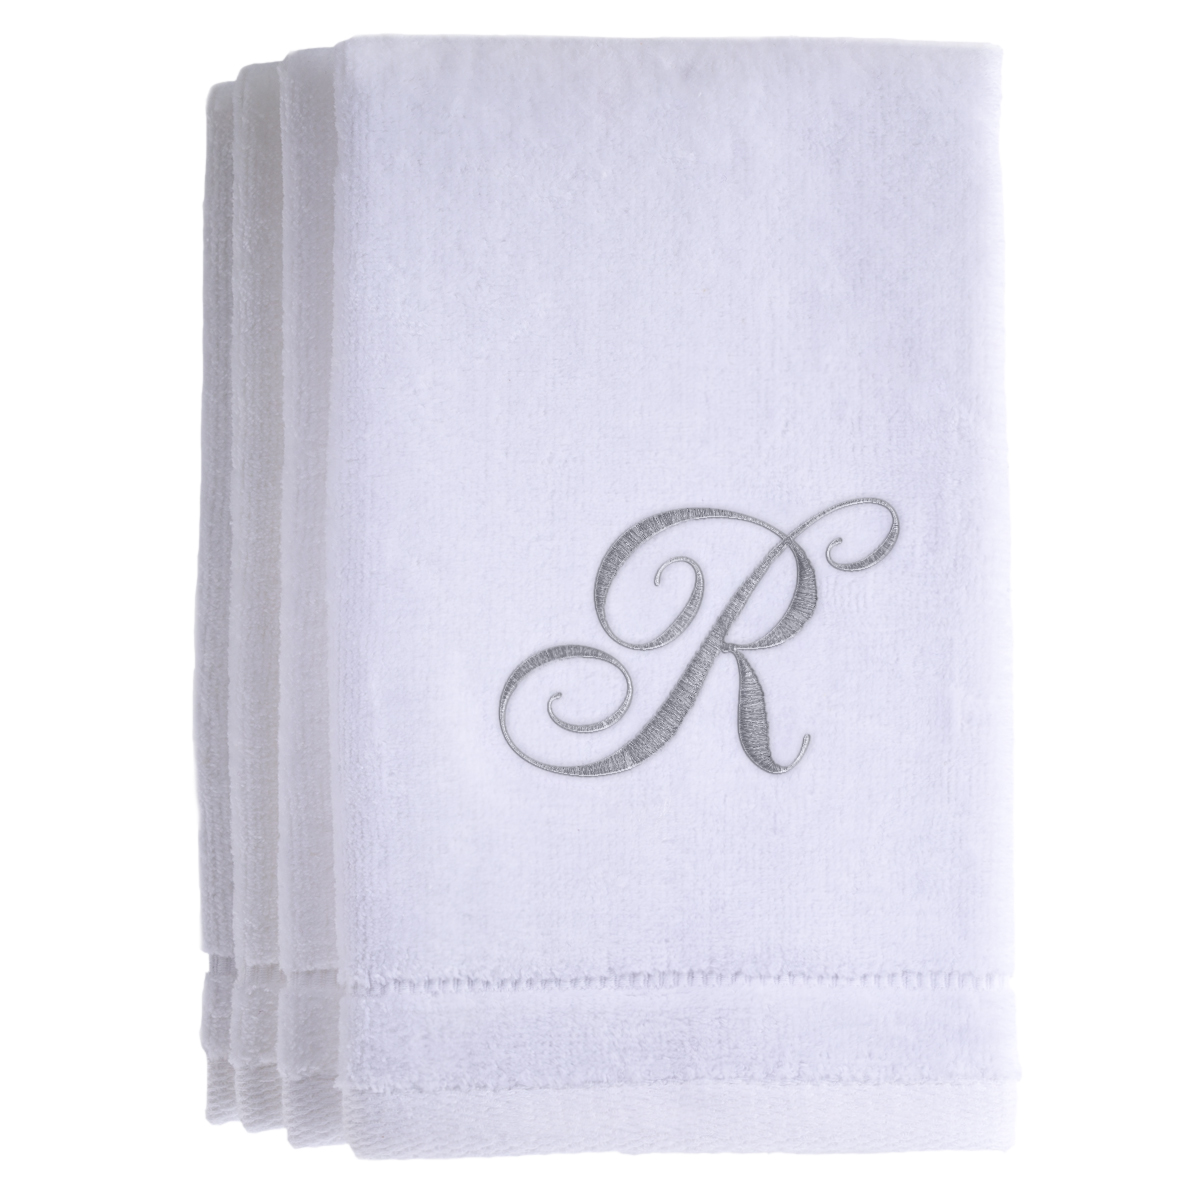 Personalized Sweat Towel: Deon Reviews 4U: Monogrammed Towels Set Of 4 Initial R (White